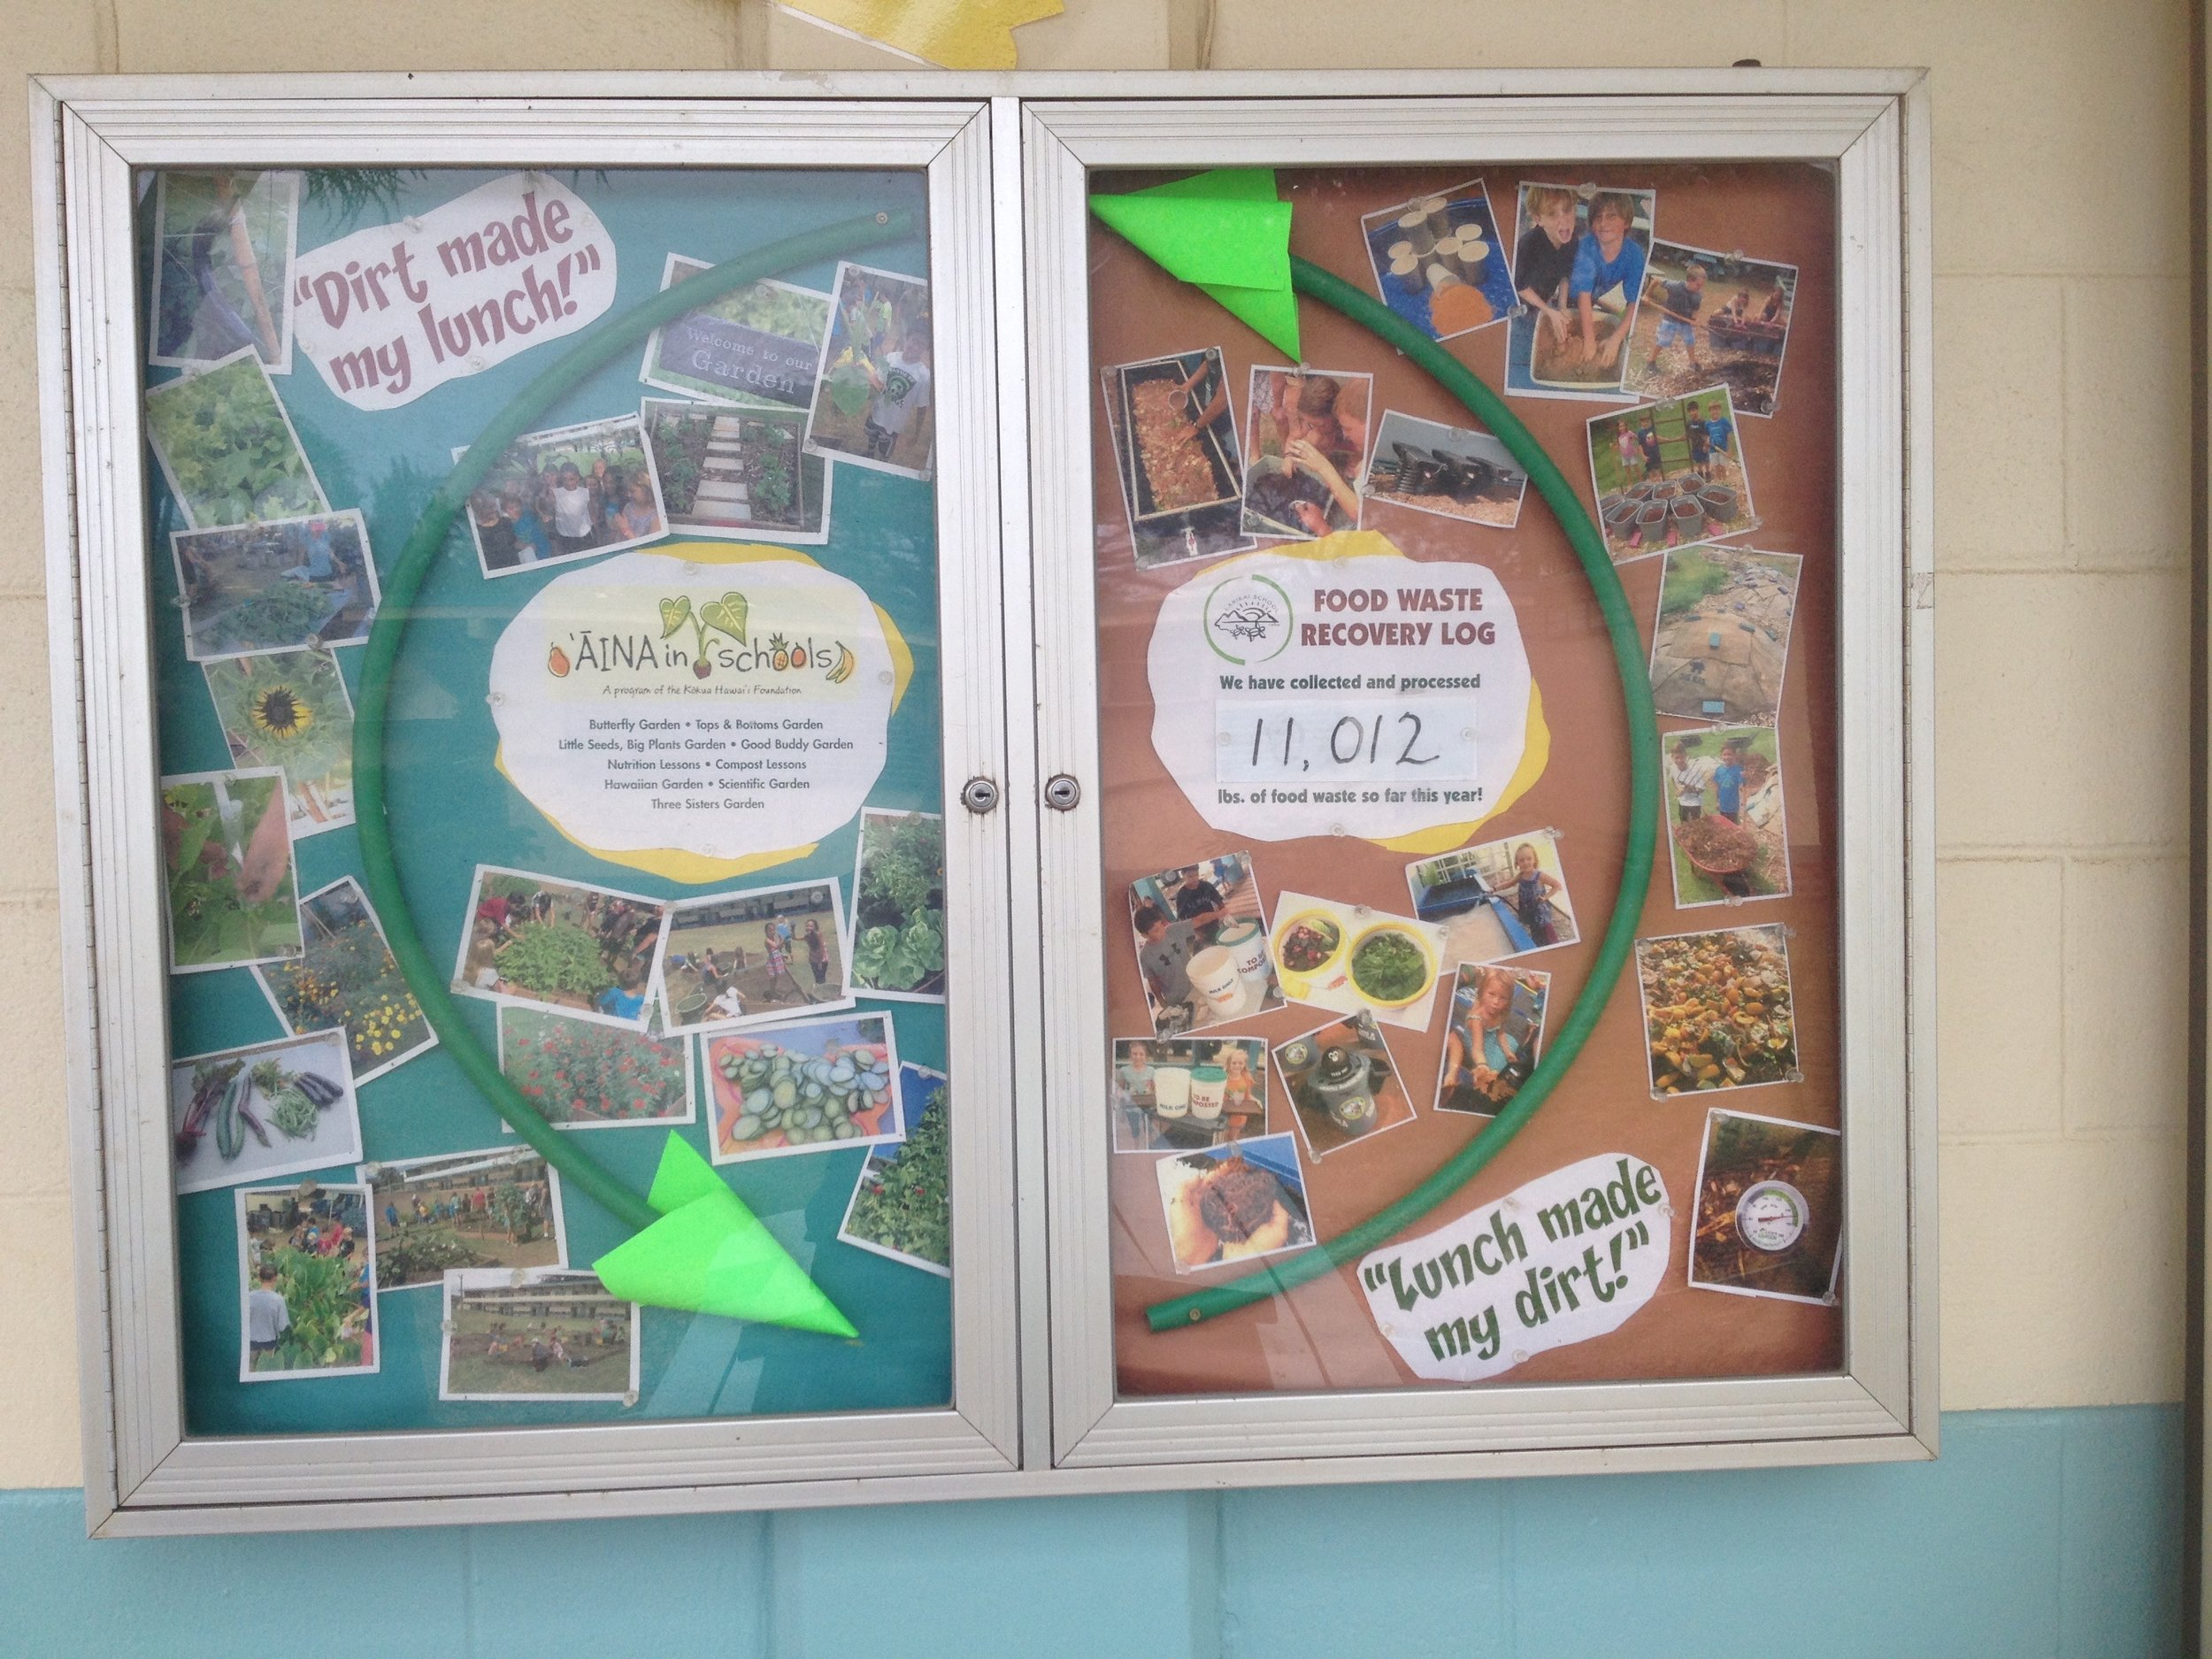 Photo: Lanikai Elementary School Food Waste Recovery Log as of March 2016, over 11,000 pounds of food waste recycled!